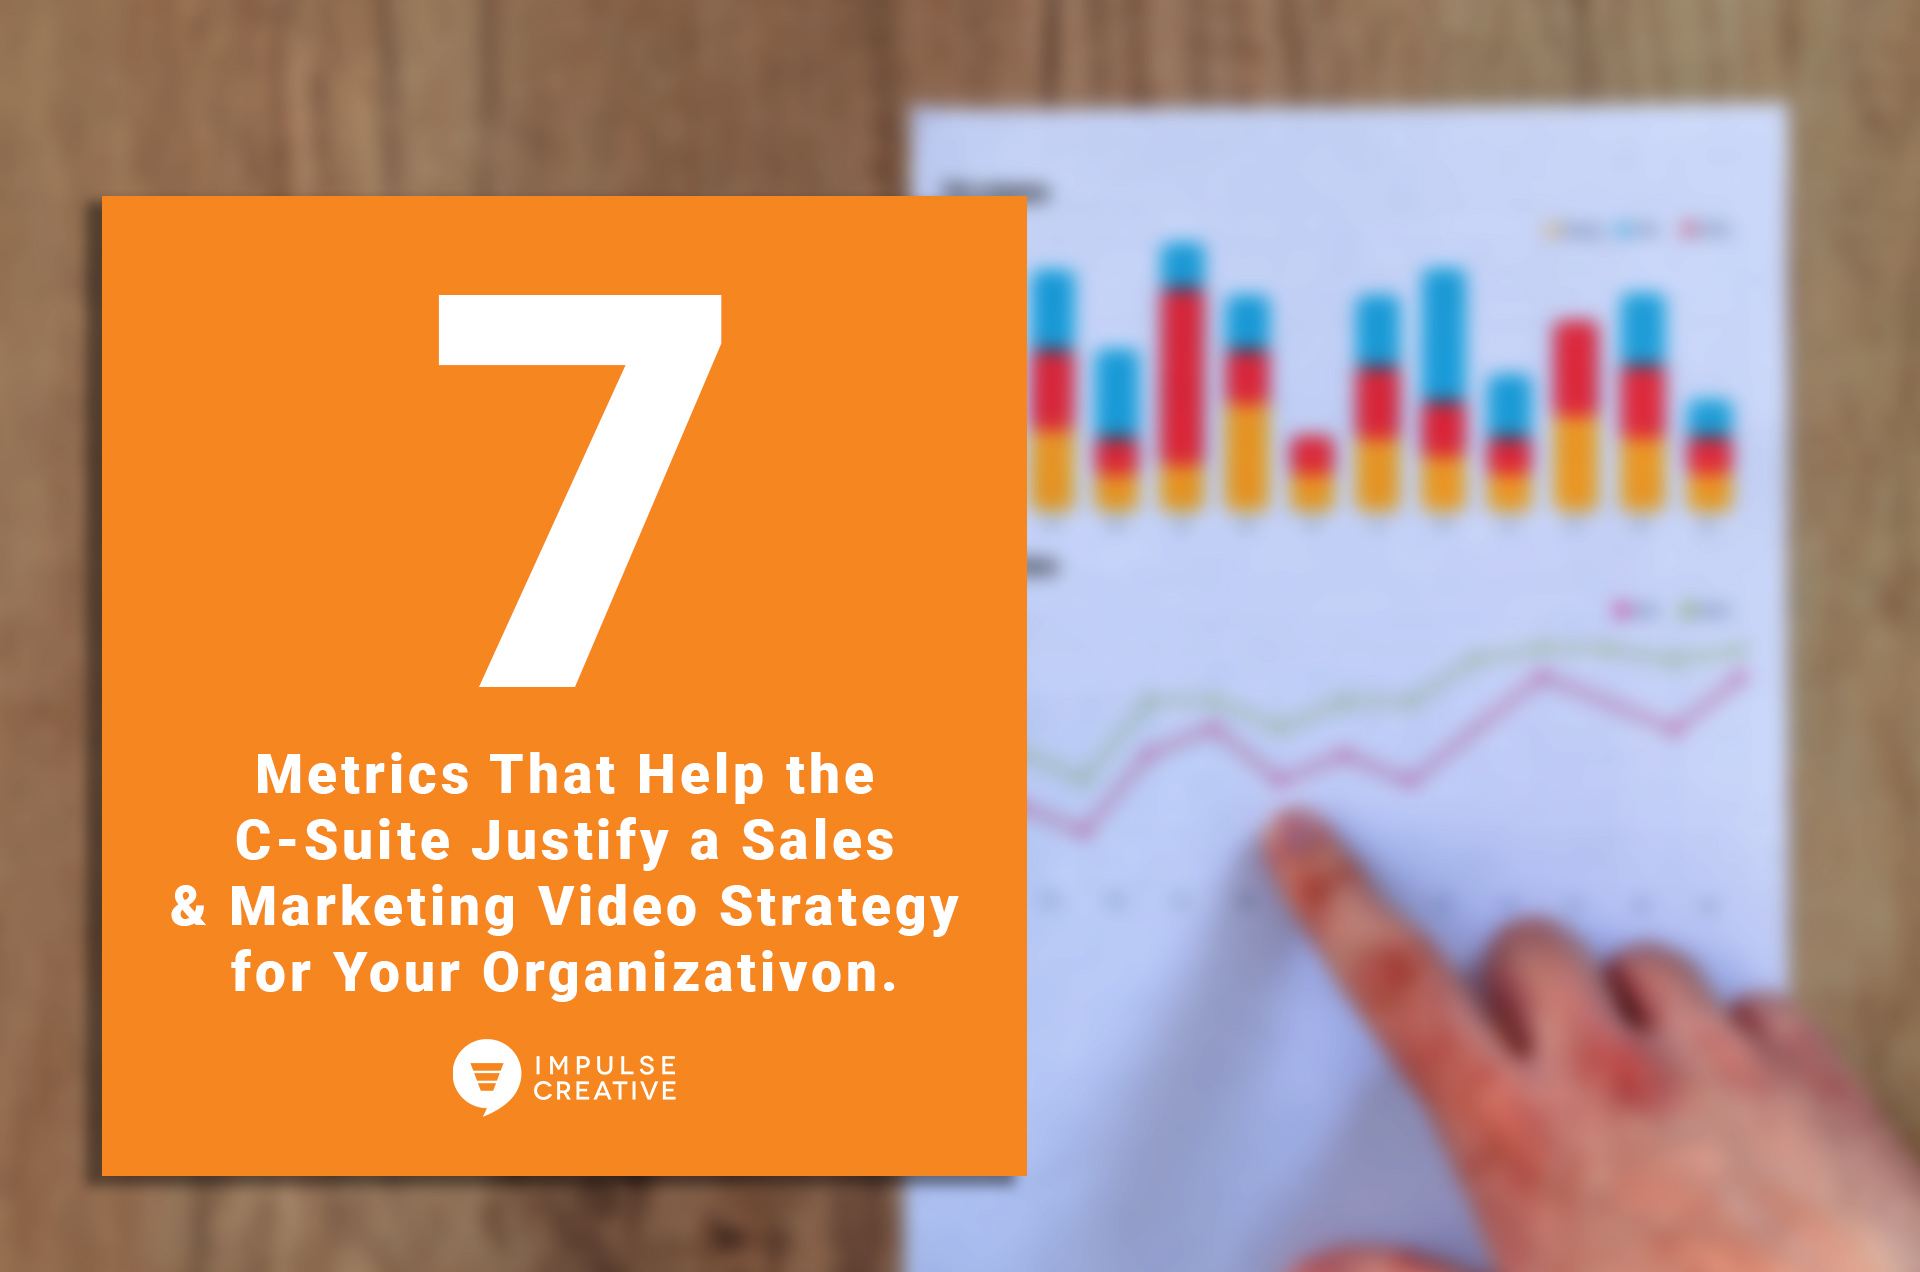 7 Metrics That Help the C-Suite Justify a Sales and